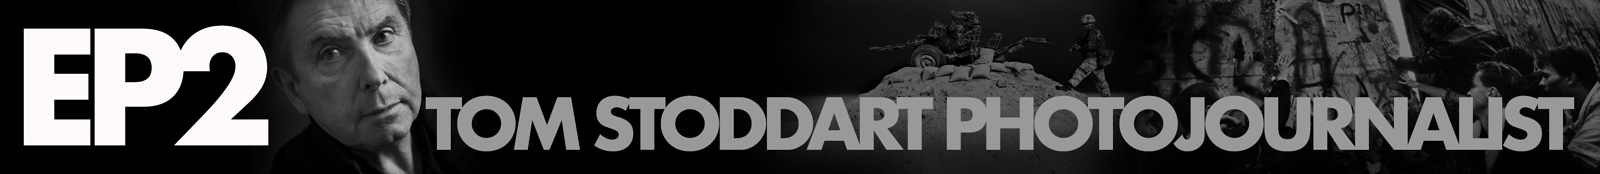 Black and white banner that appears on the Breathe Pictures Tom Stoddart podcast page